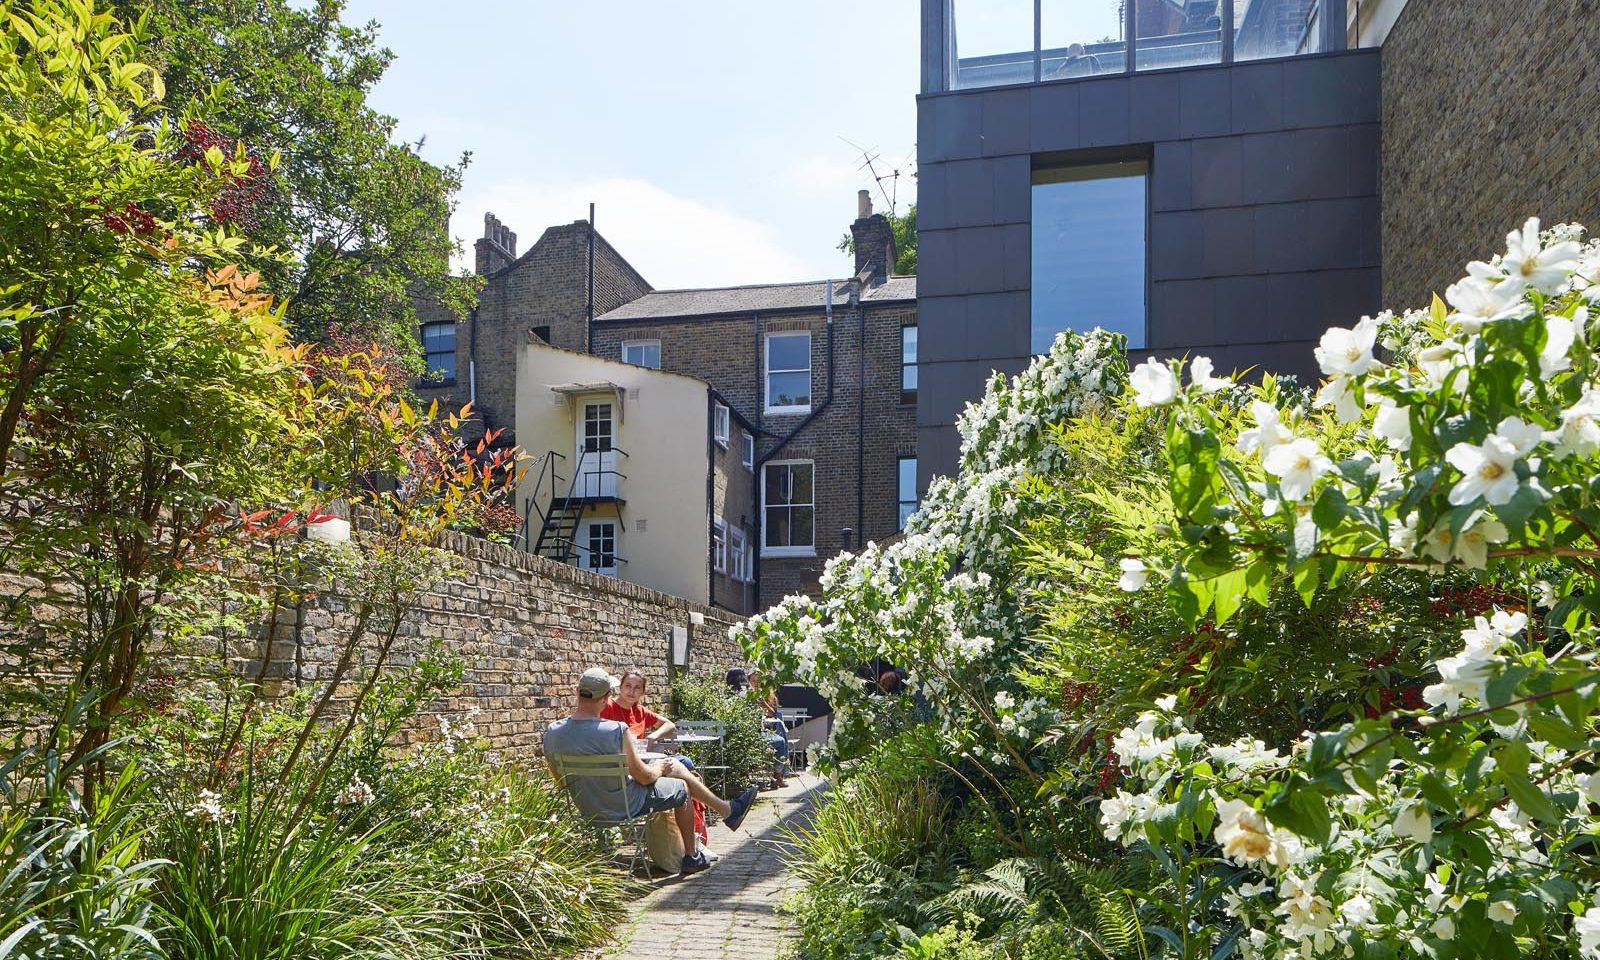 This photo is a view of the SLG's Fox Garden, it shows bushes and plants in the foreground, a person sitting on a chair in the mid-ground and the building of the gallery in the background.